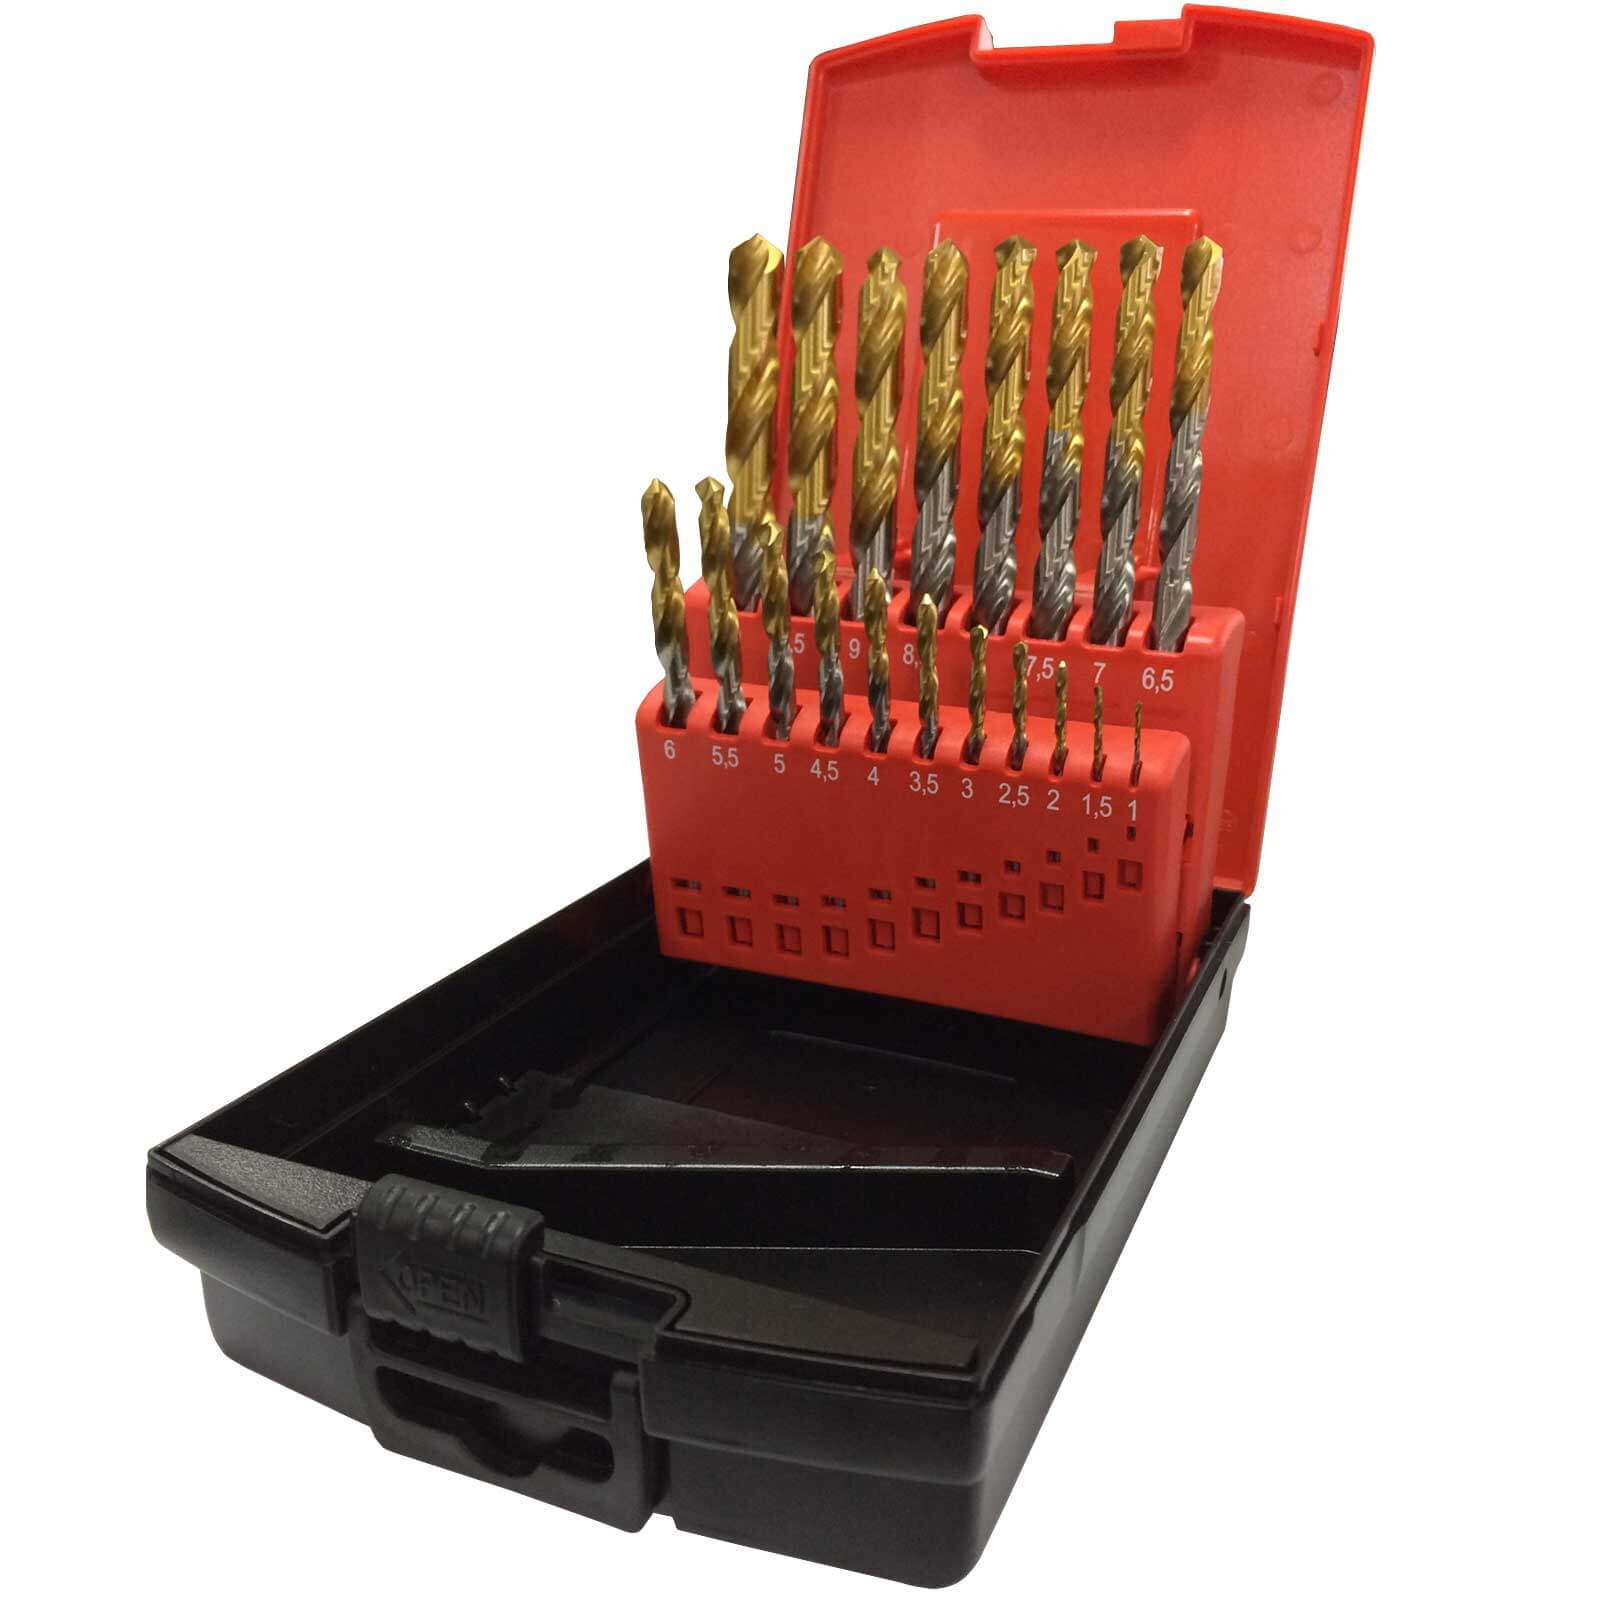 Image of Osborn Goldex 19 Piece HSS 1 - 10mm By 0.5mm Drill Set